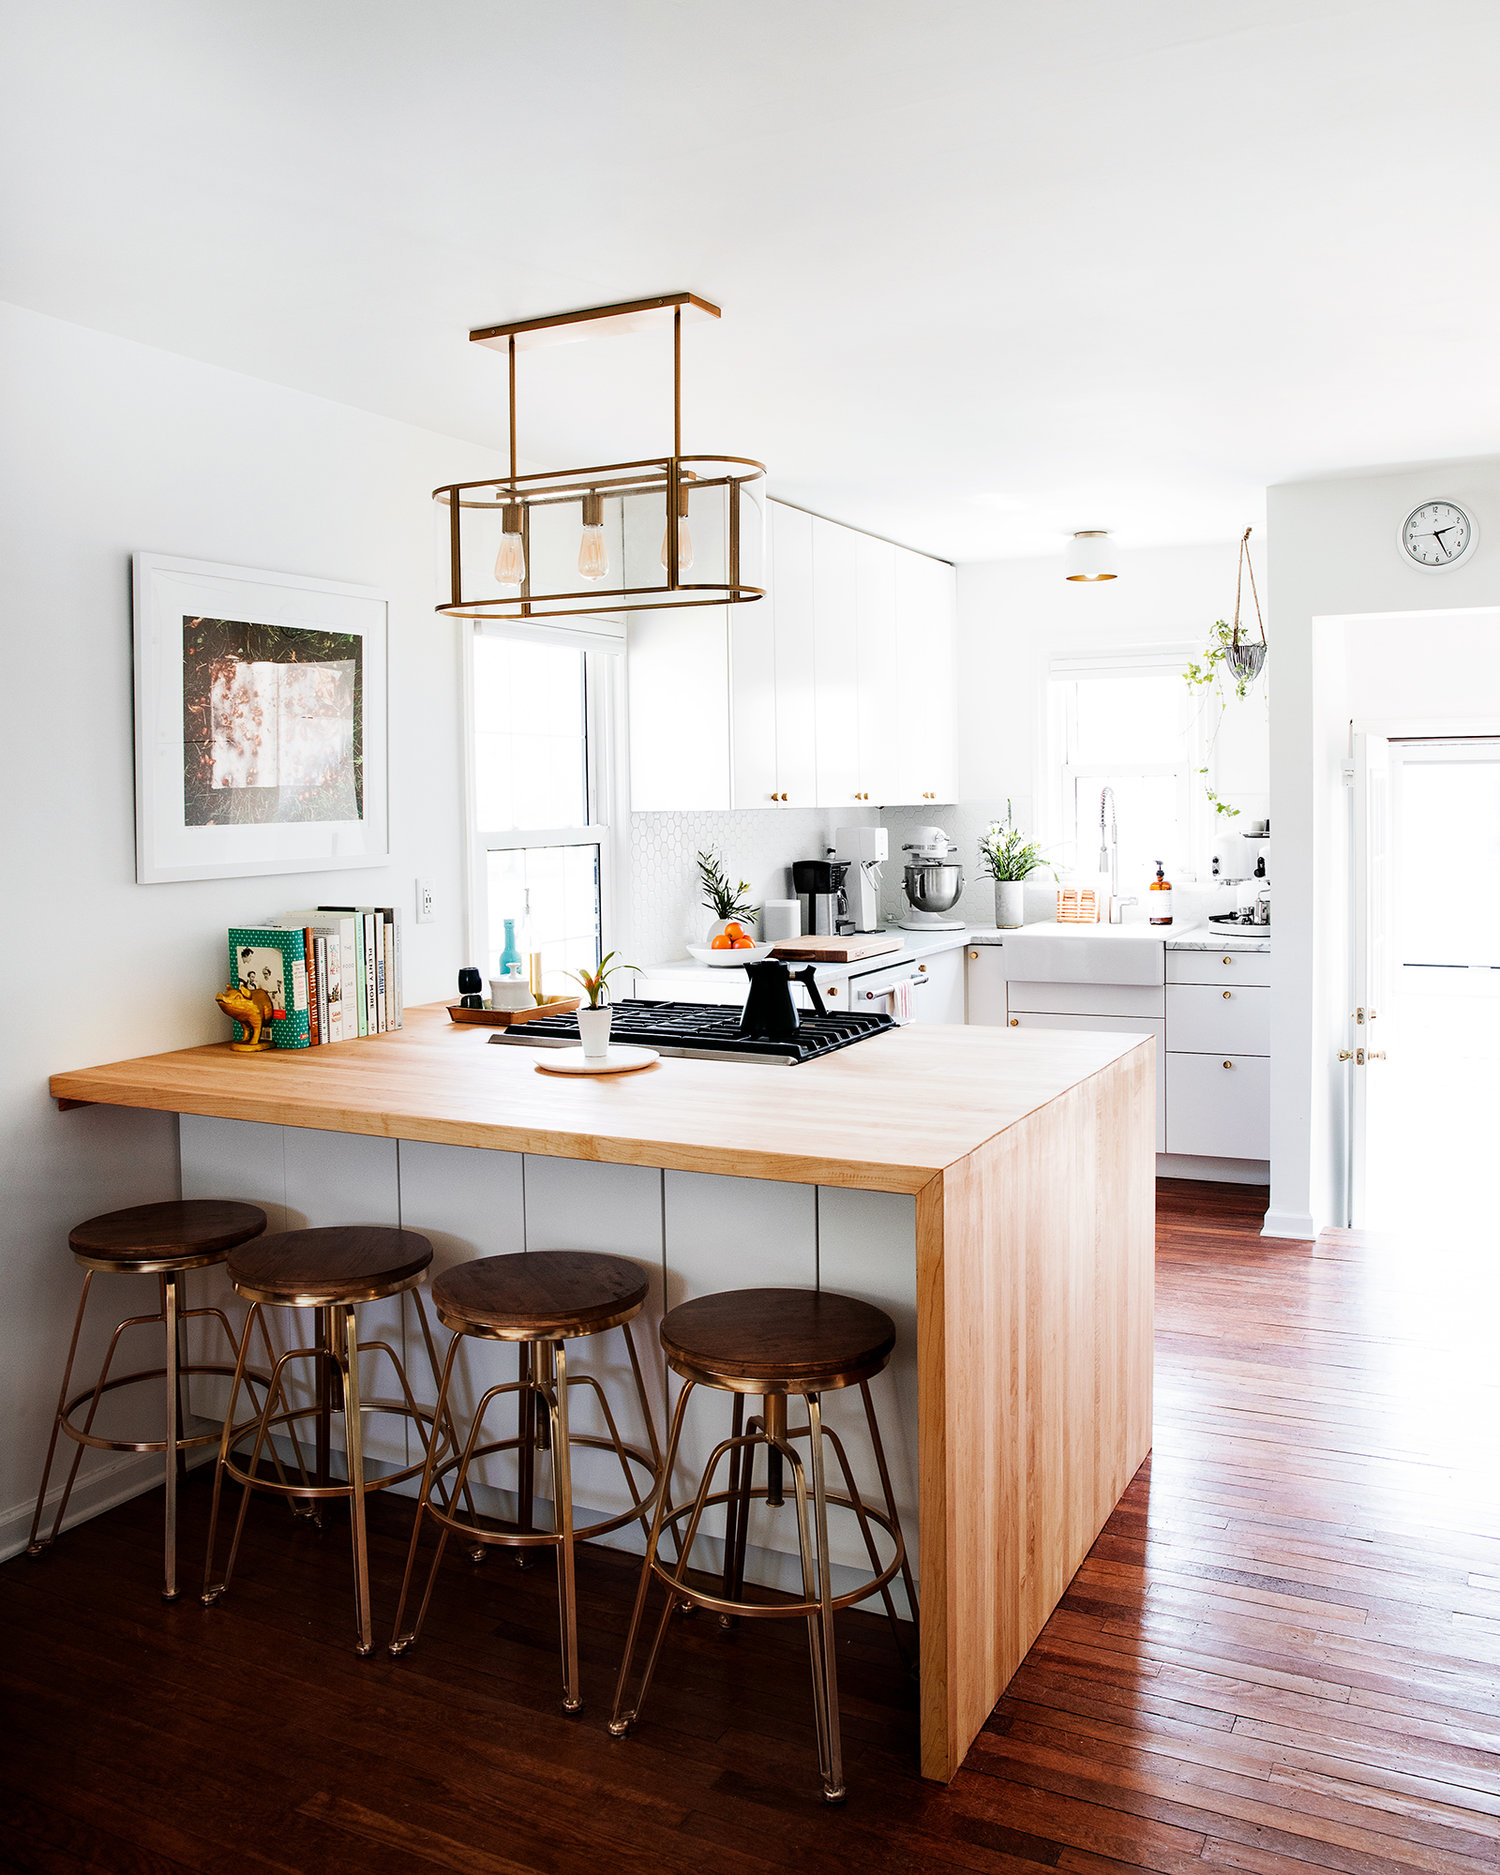 How to Afford a Kitchen Remodel on a Budget